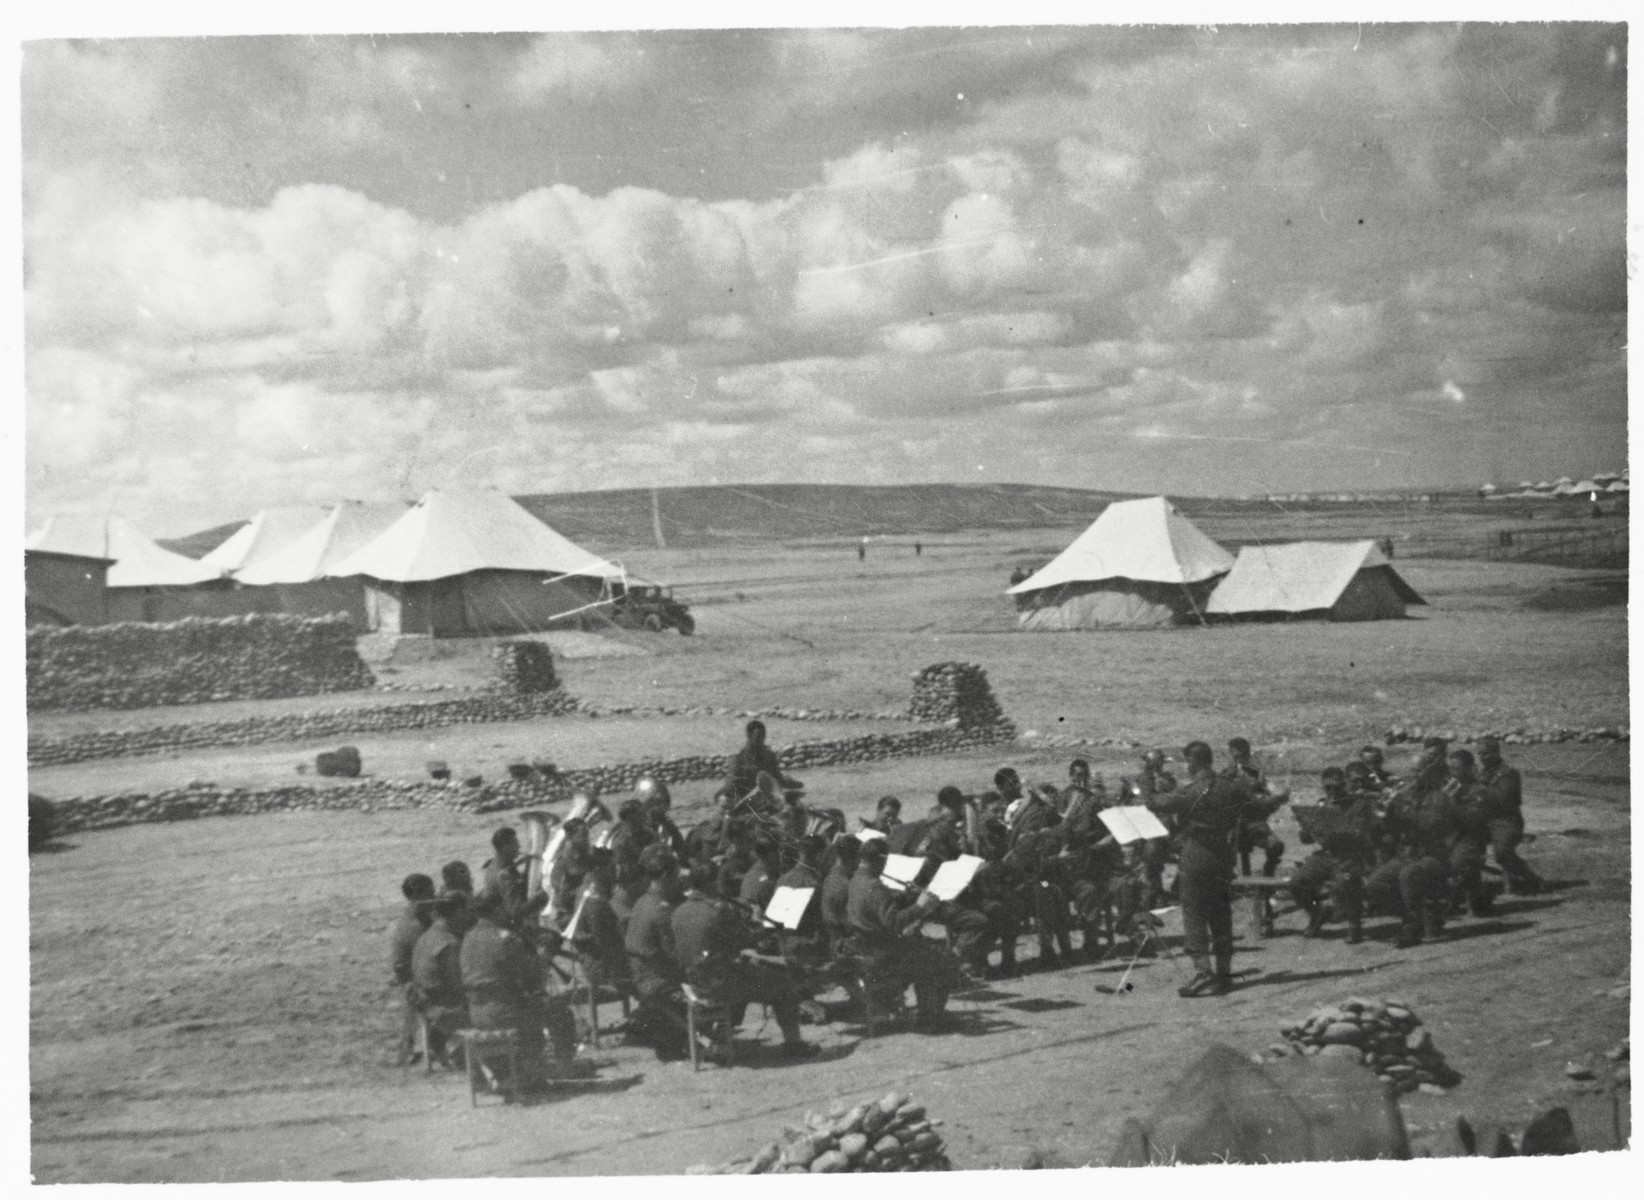 Members of the orchestra of the 2nd Polish Corps (Anders Army) perform outside at their military base in the Iraqi desert, where they were stationed from the summer of 1942 until the summer of 1943.